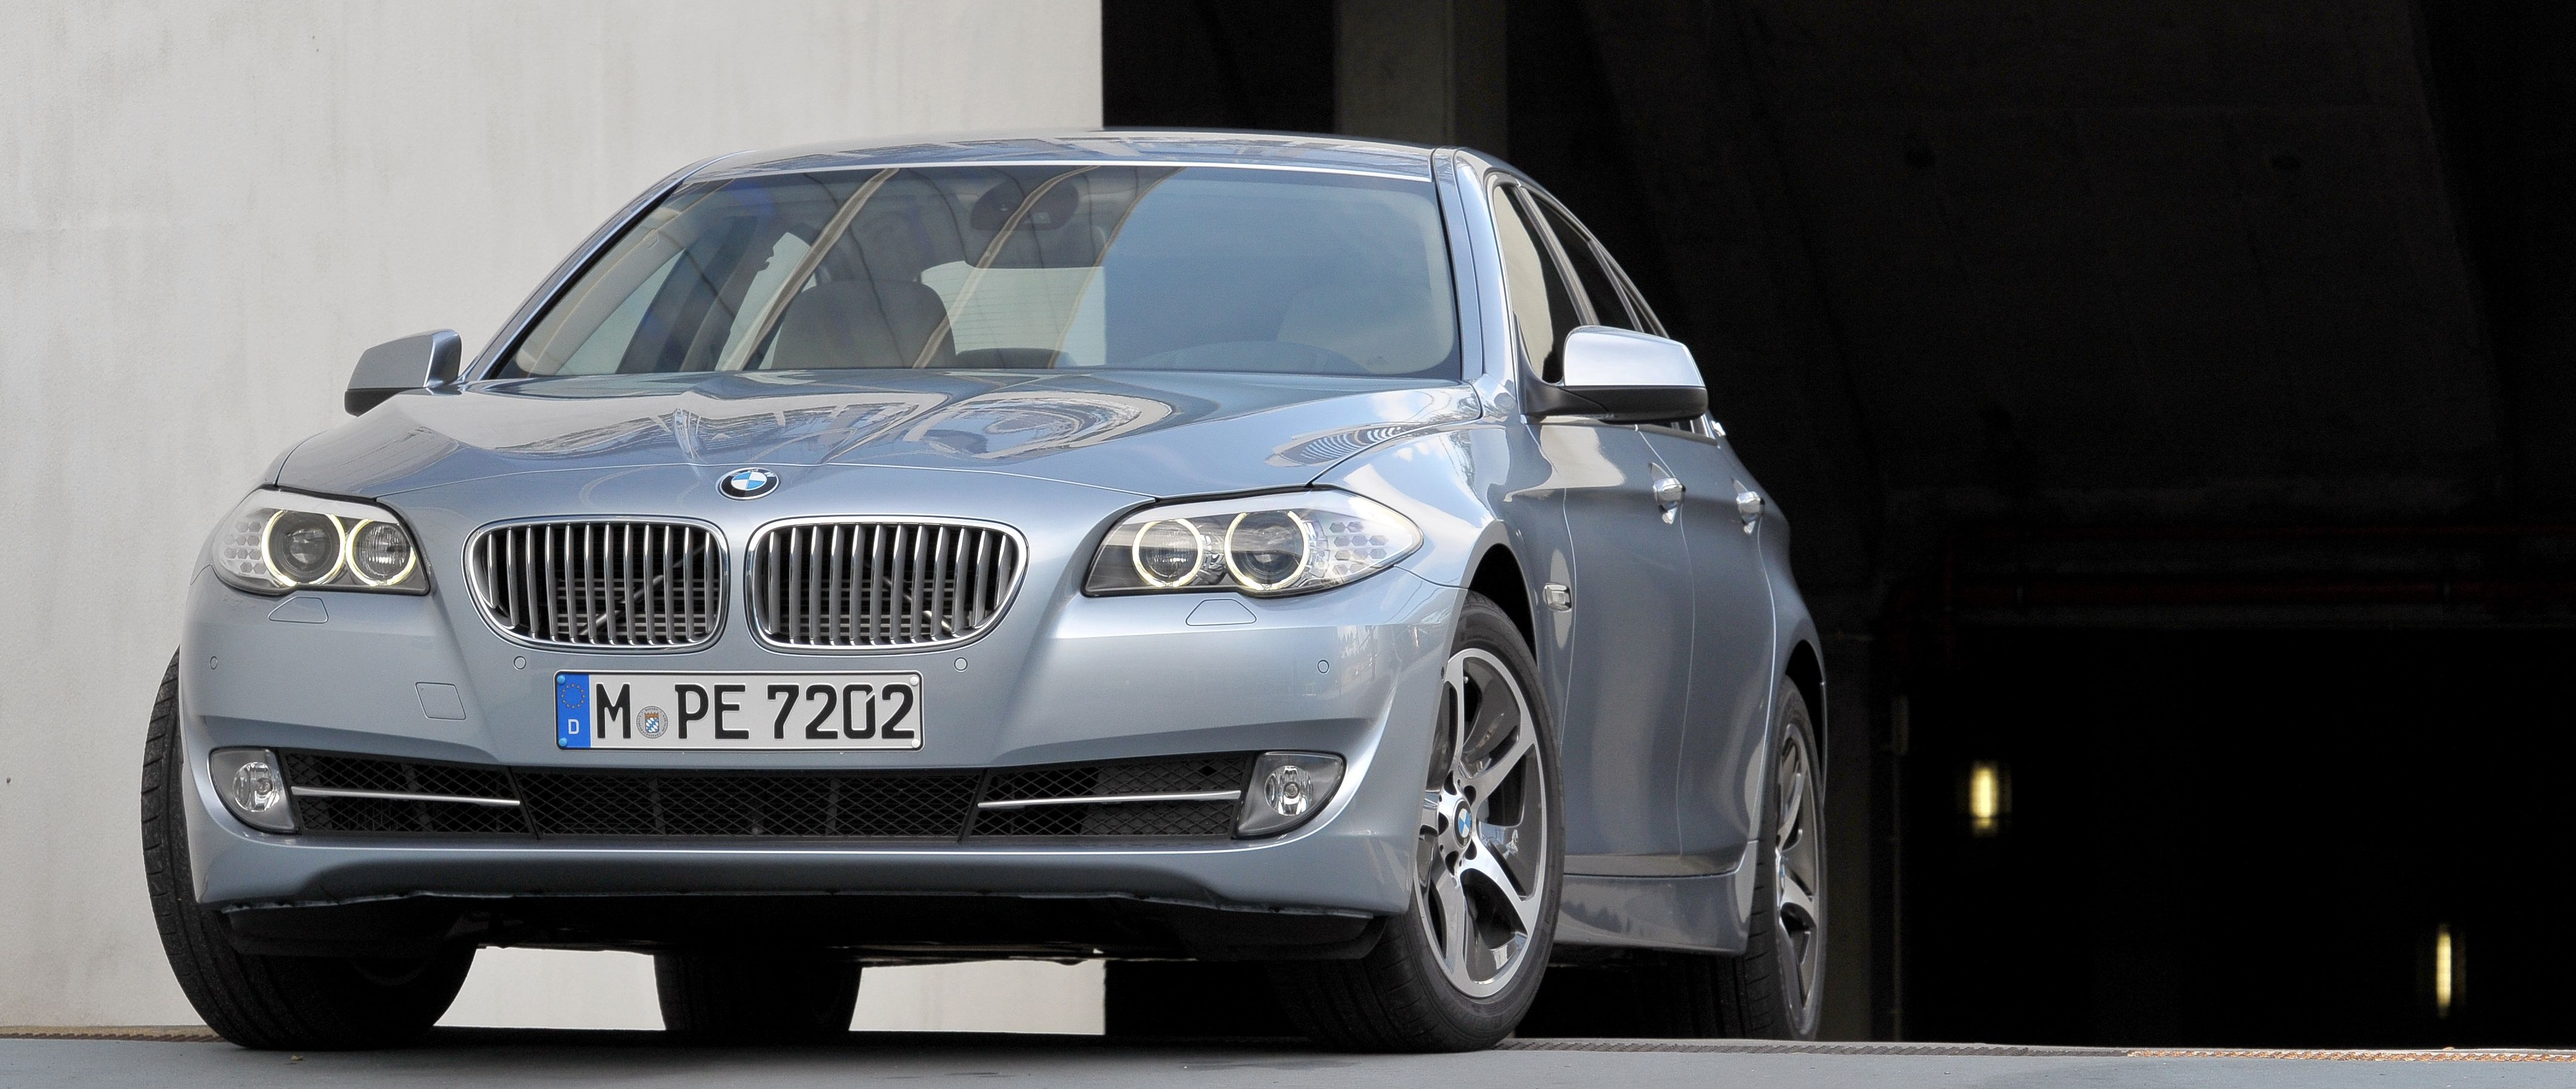 The Combination Of A 54hp Electric Motor With A 302hp Turbocharged Six Cylinder Petrol Engine Makes The 5 Series Activehybrid One Of The Fastest 5 Series